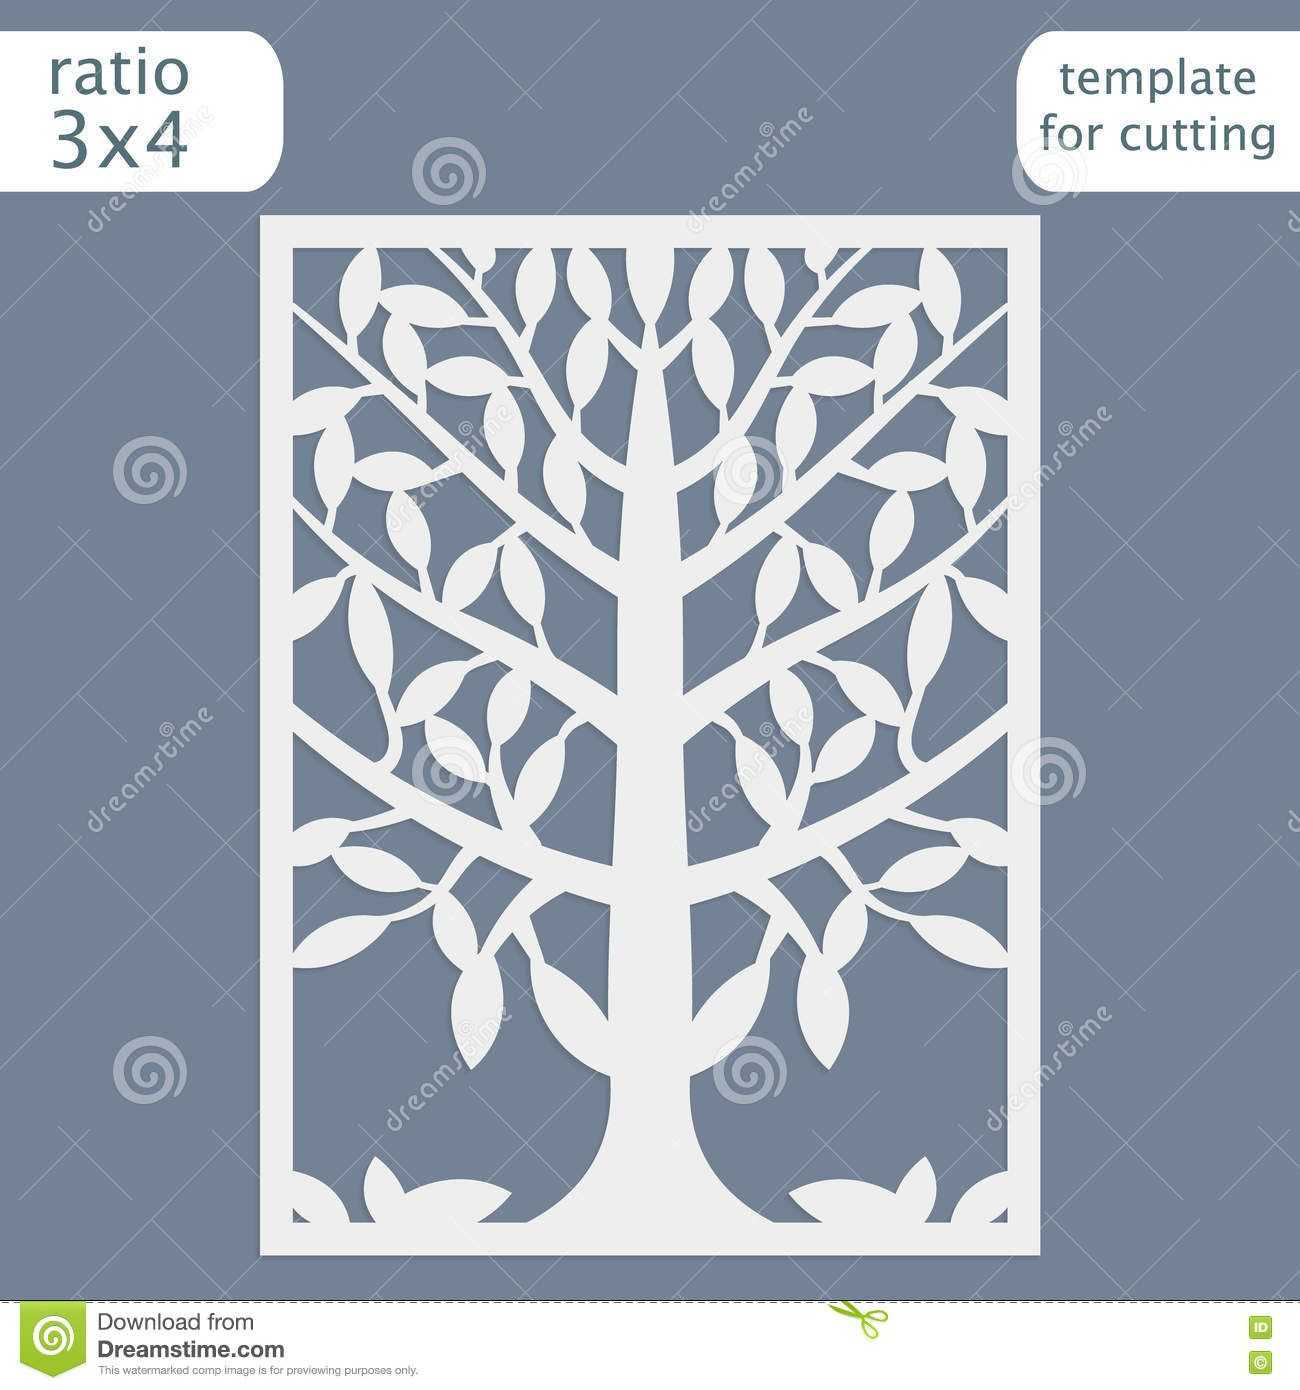 Free Svg Greeting Card Templates - Yahoo Image Search For Free Svg Card Templates